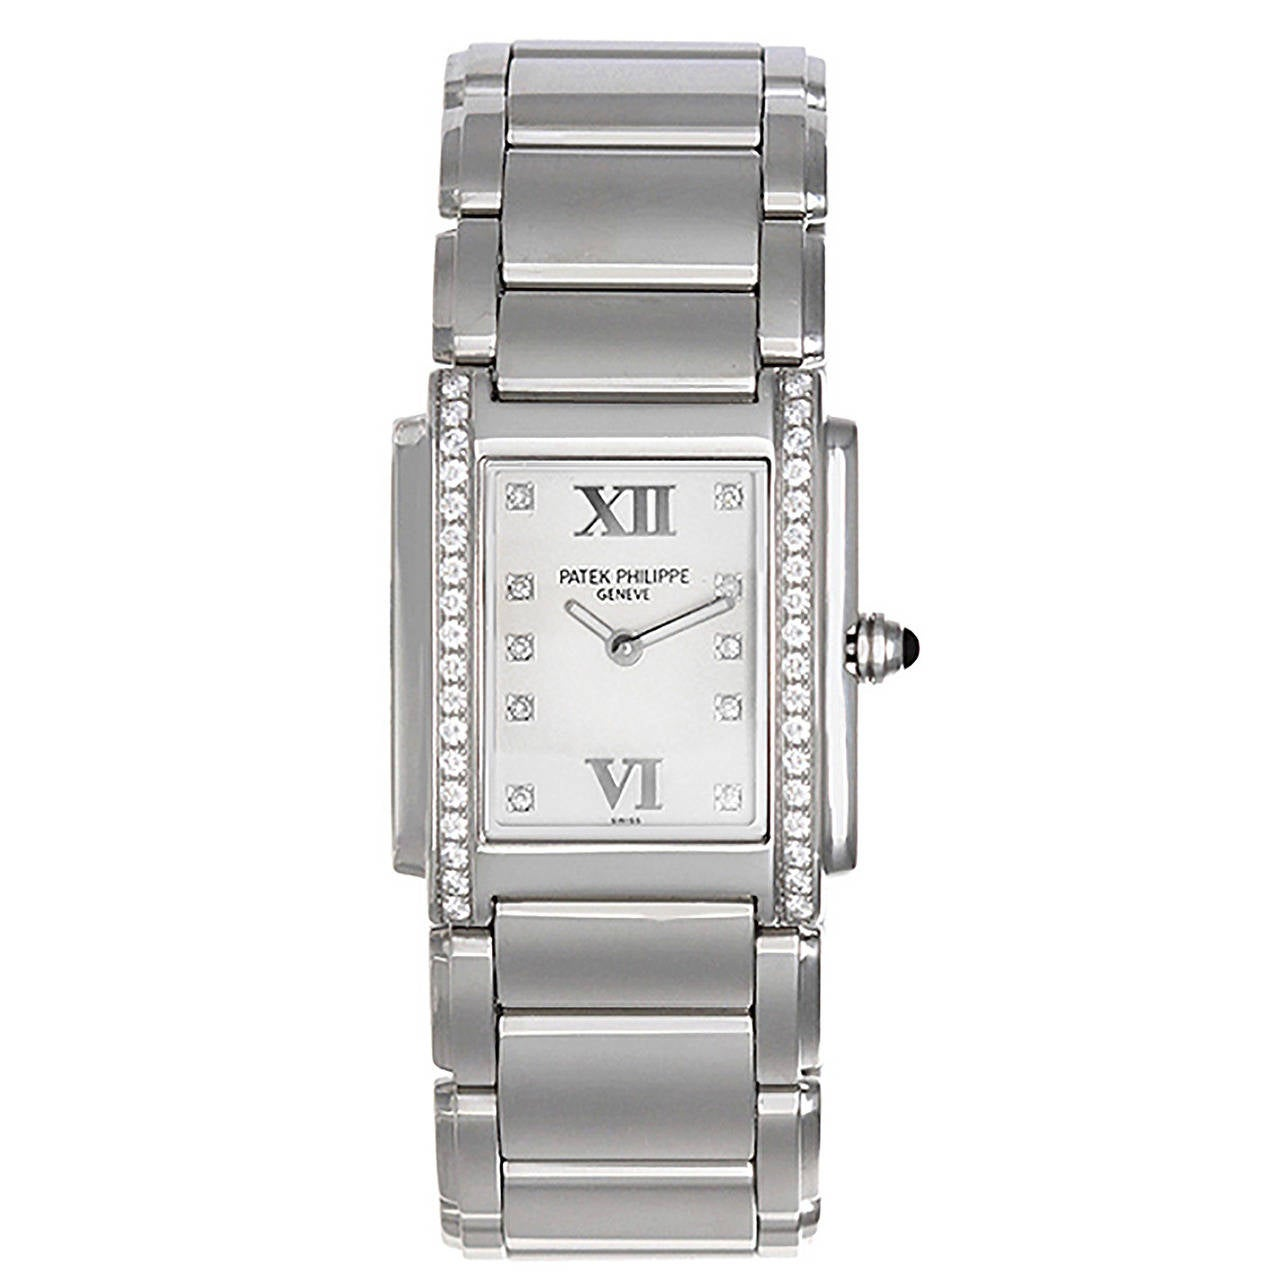 Patek Philippe Lady's Stainless Steel Twenty-4 Quartz Wristwatch 1